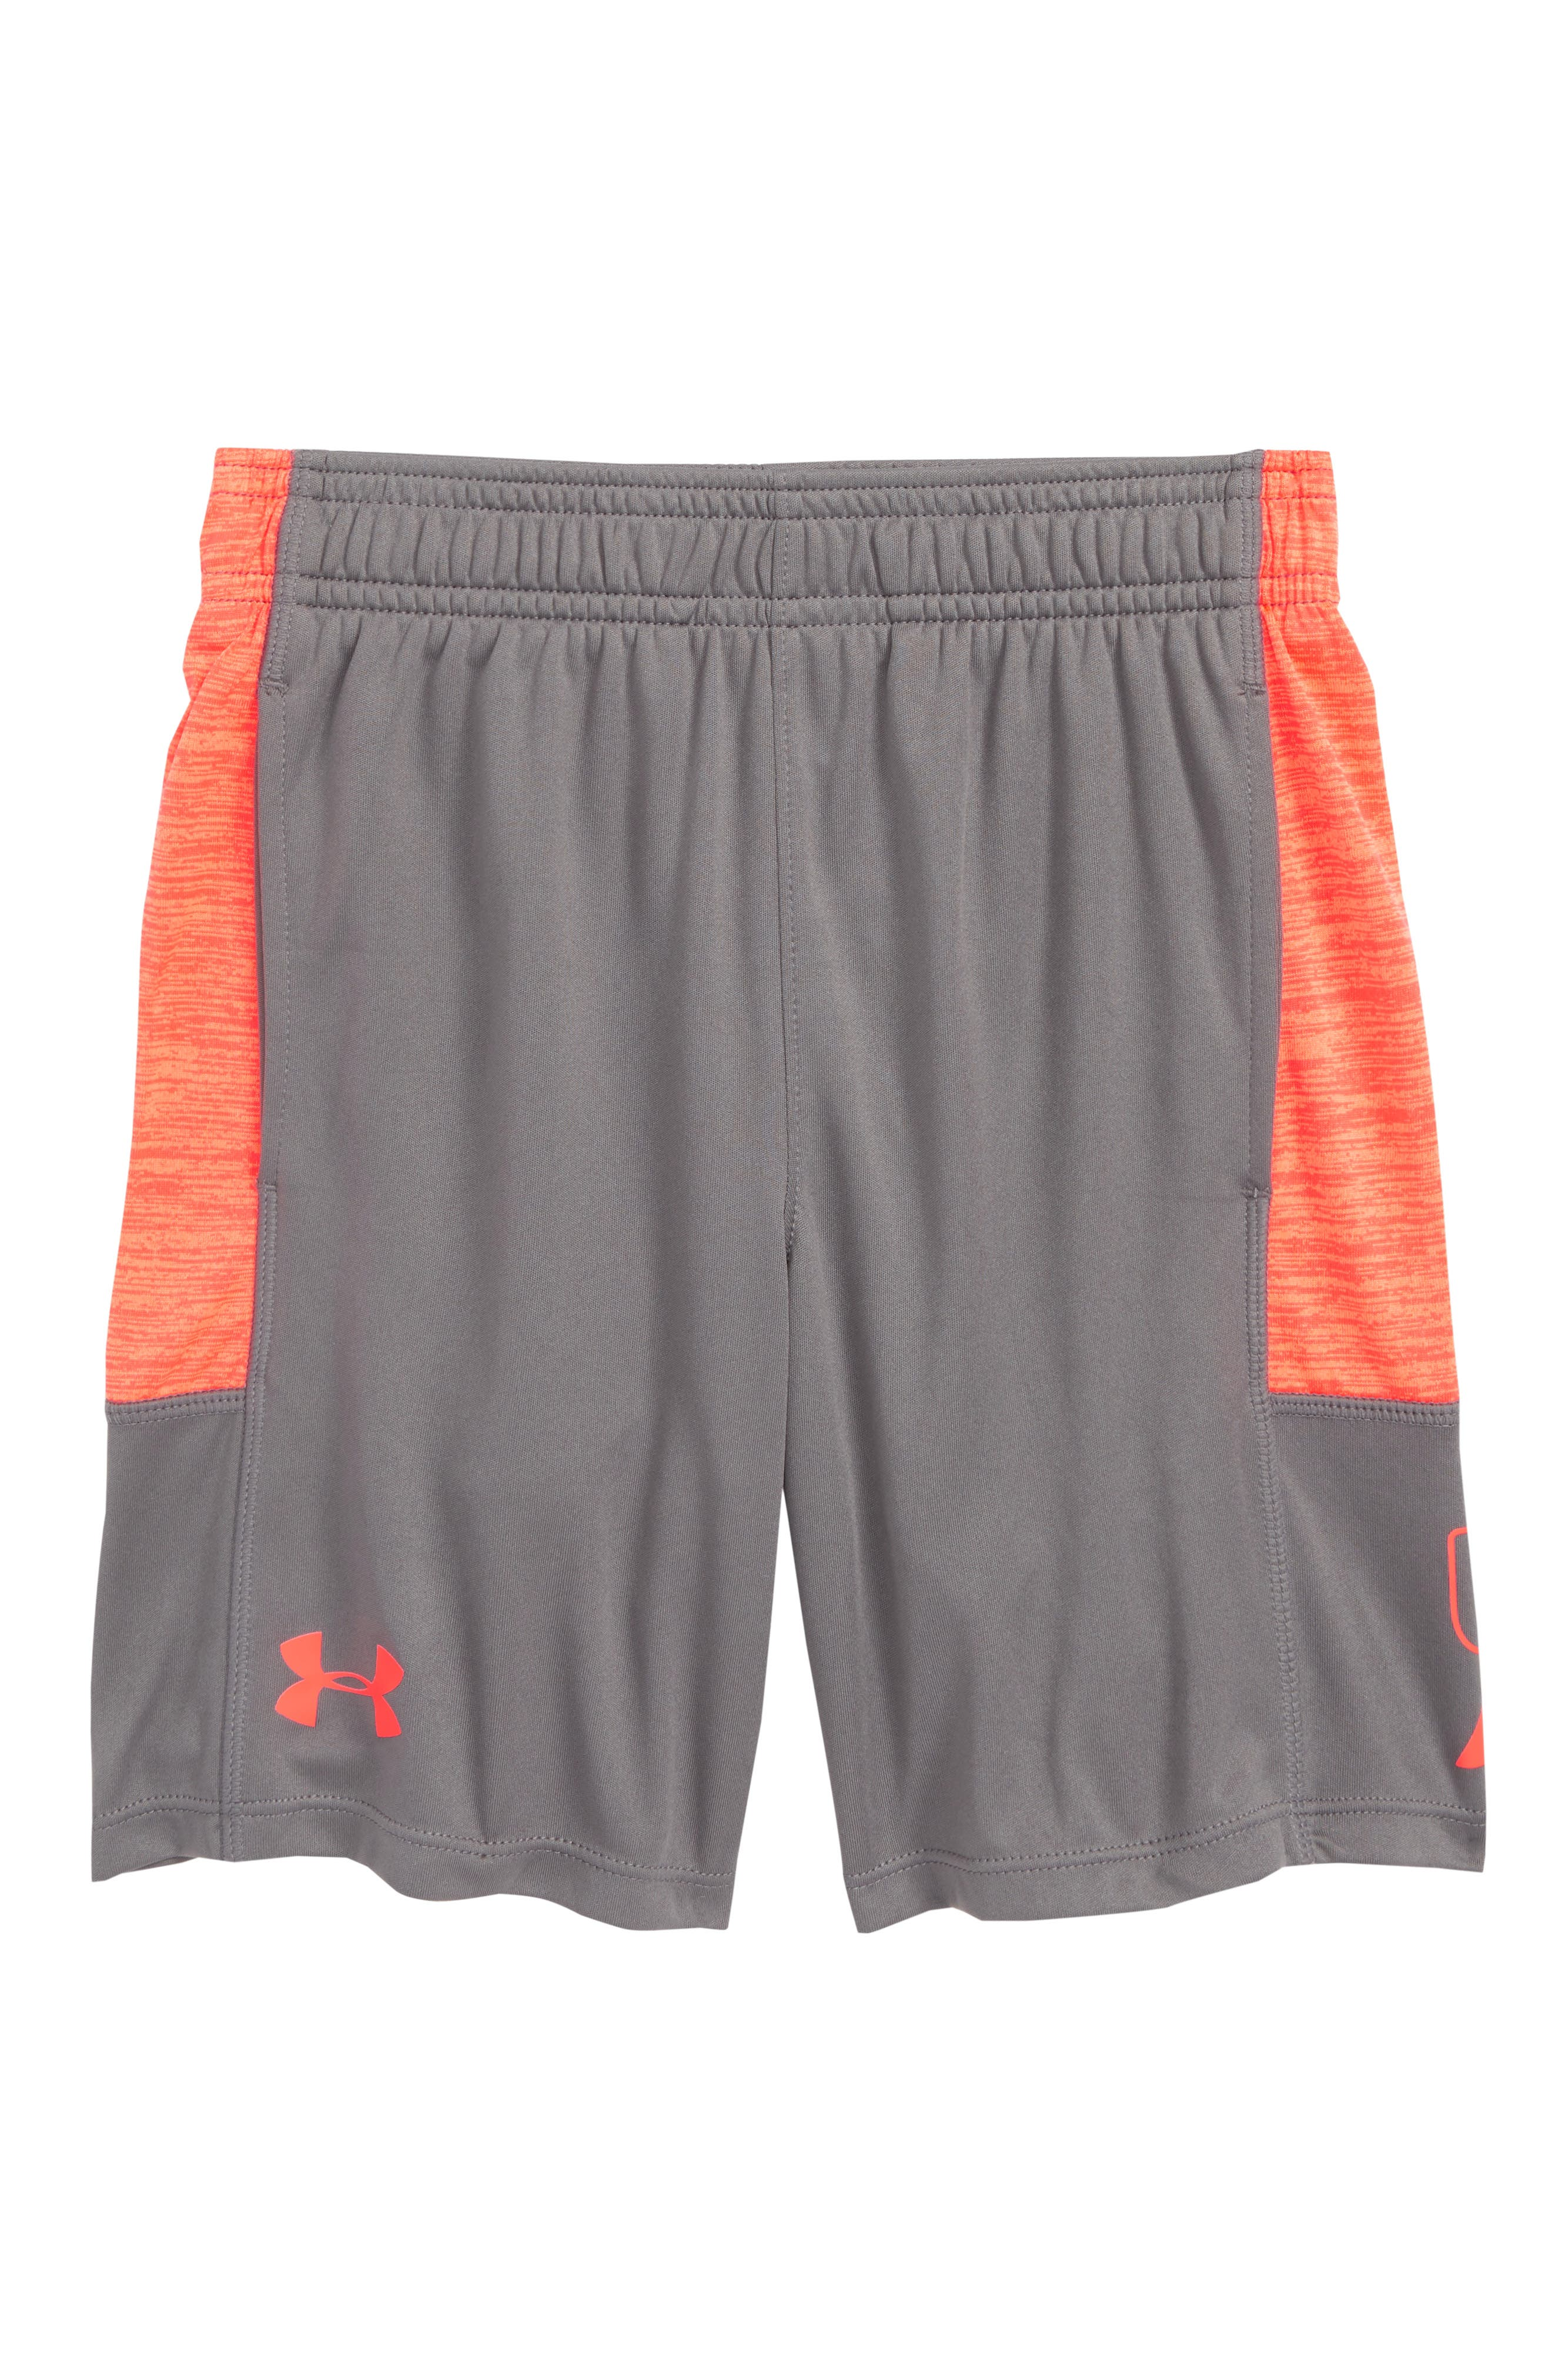 Twist Stunt HeatGear<sup>®</sup> Shorts,                             Main thumbnail 1, color,                             GRAPHITE/ NEON CORAL